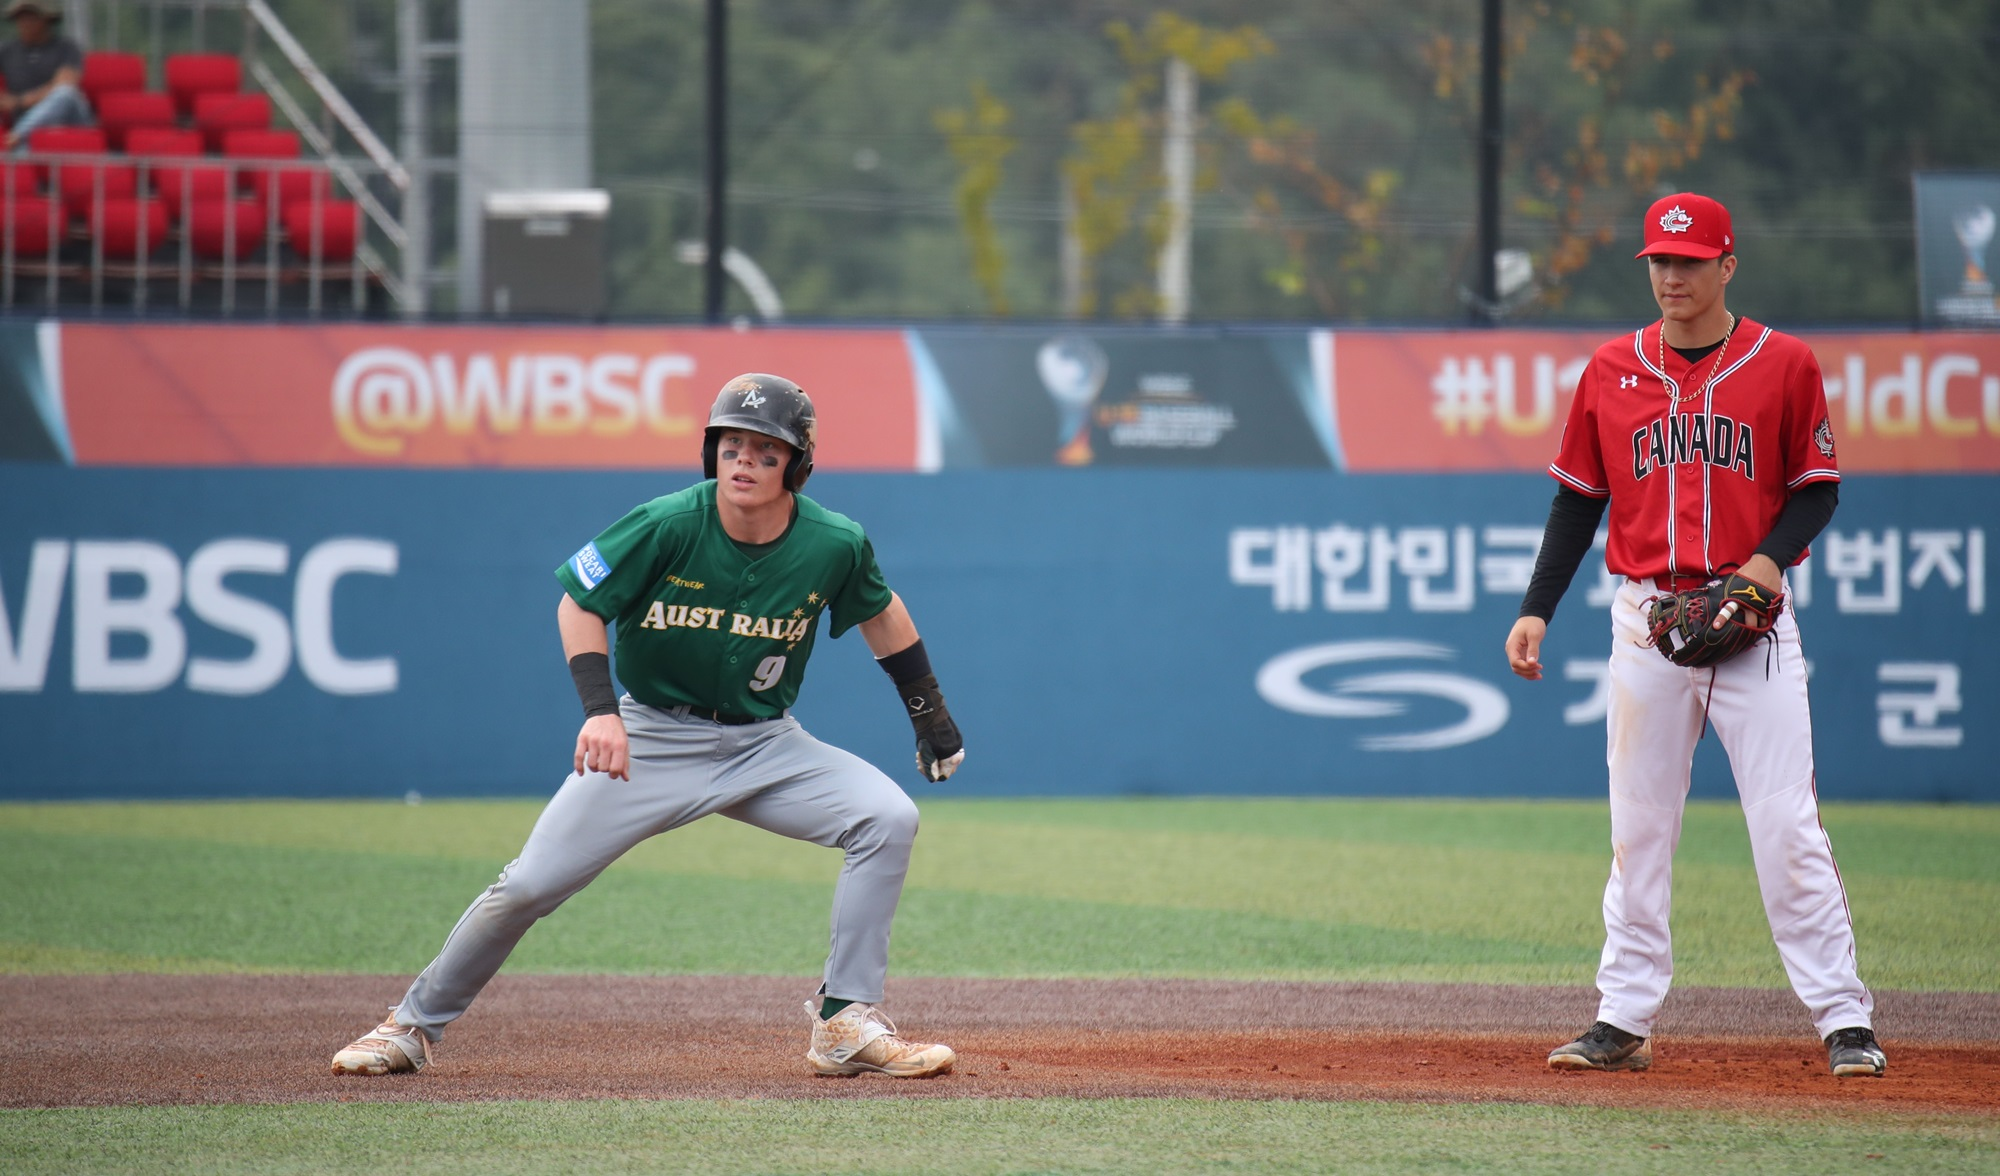 Trevis Bazzana runs the bases against Canada